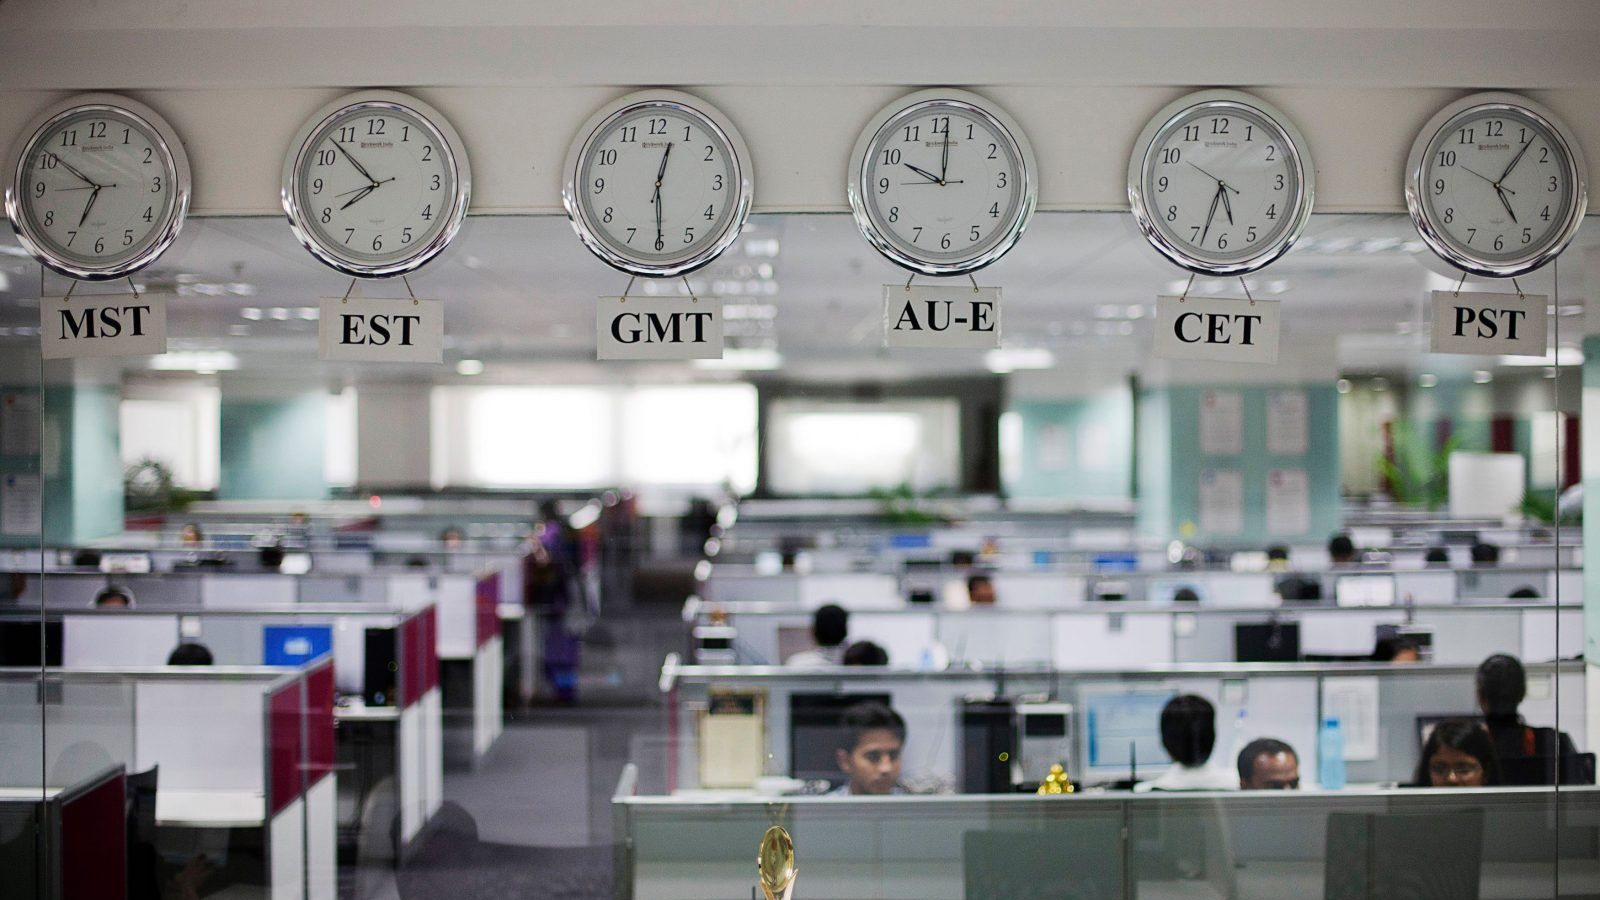 Workers are pictured beneath clocks displaying time zones in various parts of the world at an outsourcing centre in Bangalore, February 29, 2012. India's IT industry, with Bangalore firms forming the largest component, is now worth an annual $100 billion and growing 14 percent per year, one of the few bright spots in an economy blighted by policy stagnation and political instability. Picture taken on February 29, 2012.  To match Insight INDIA-OUTSOURCING/  REUTERS/Vivek Prakash (INDIA - Tags: BUSINESS EMPLOYMENT SCIENCE TECHNOLOGY) - GM1E8450SCD01